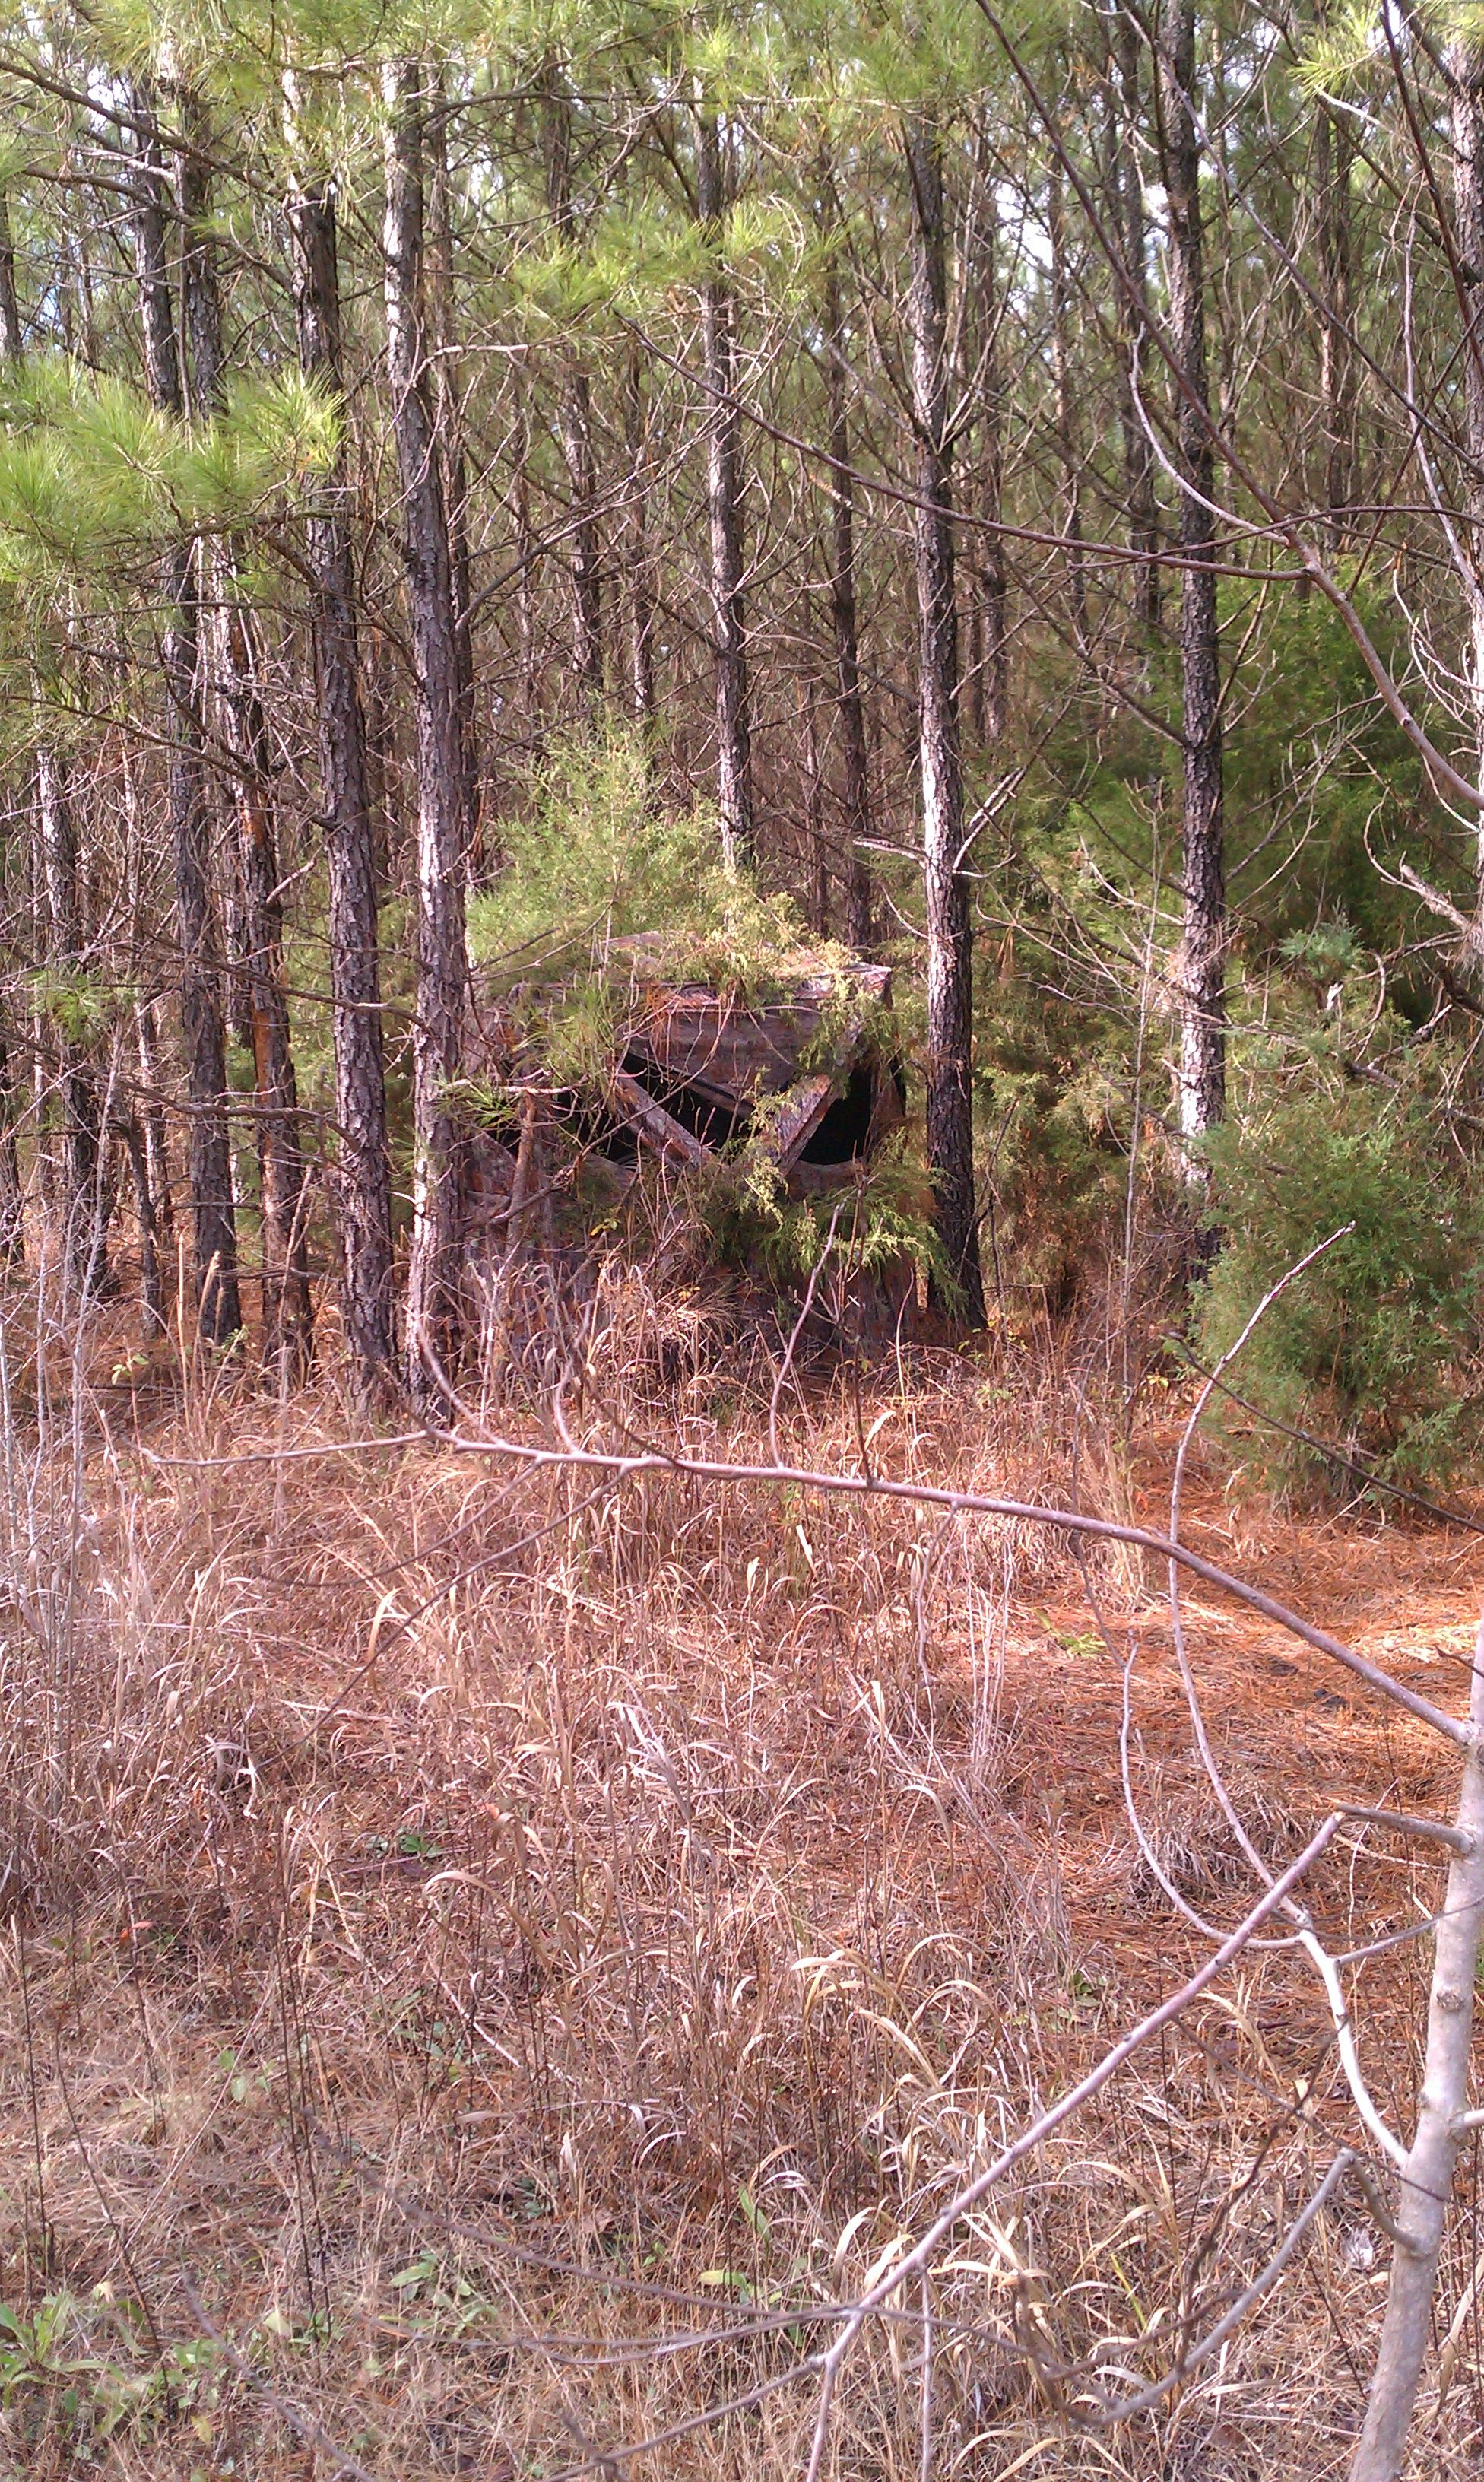 The Ground Blind Southern Georgia Hunt Camp Deer Hunting Blinds Deer Hunting Stands Ground Blinds